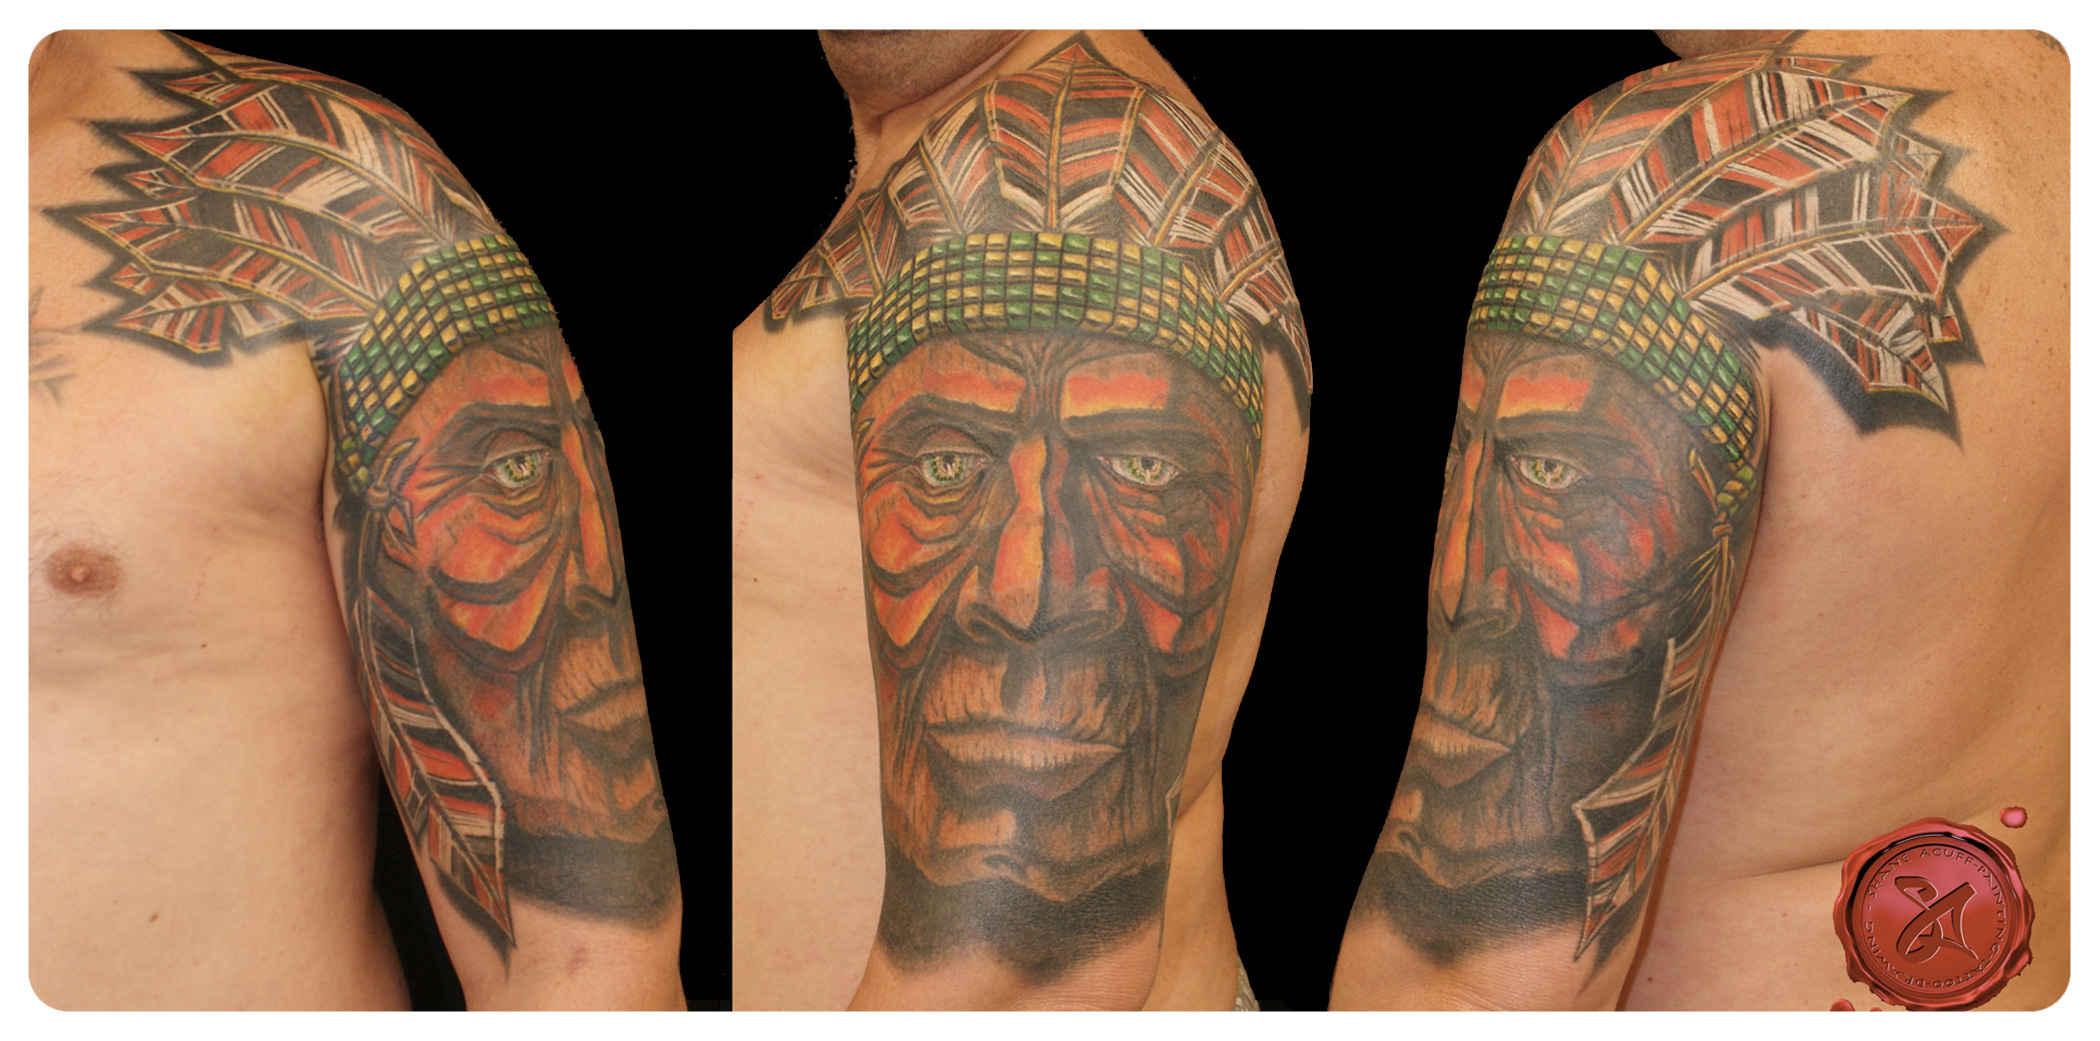 web-r_2011_tattoo_shoulder_realism-portrait_native-chief-with-feathers.jpg